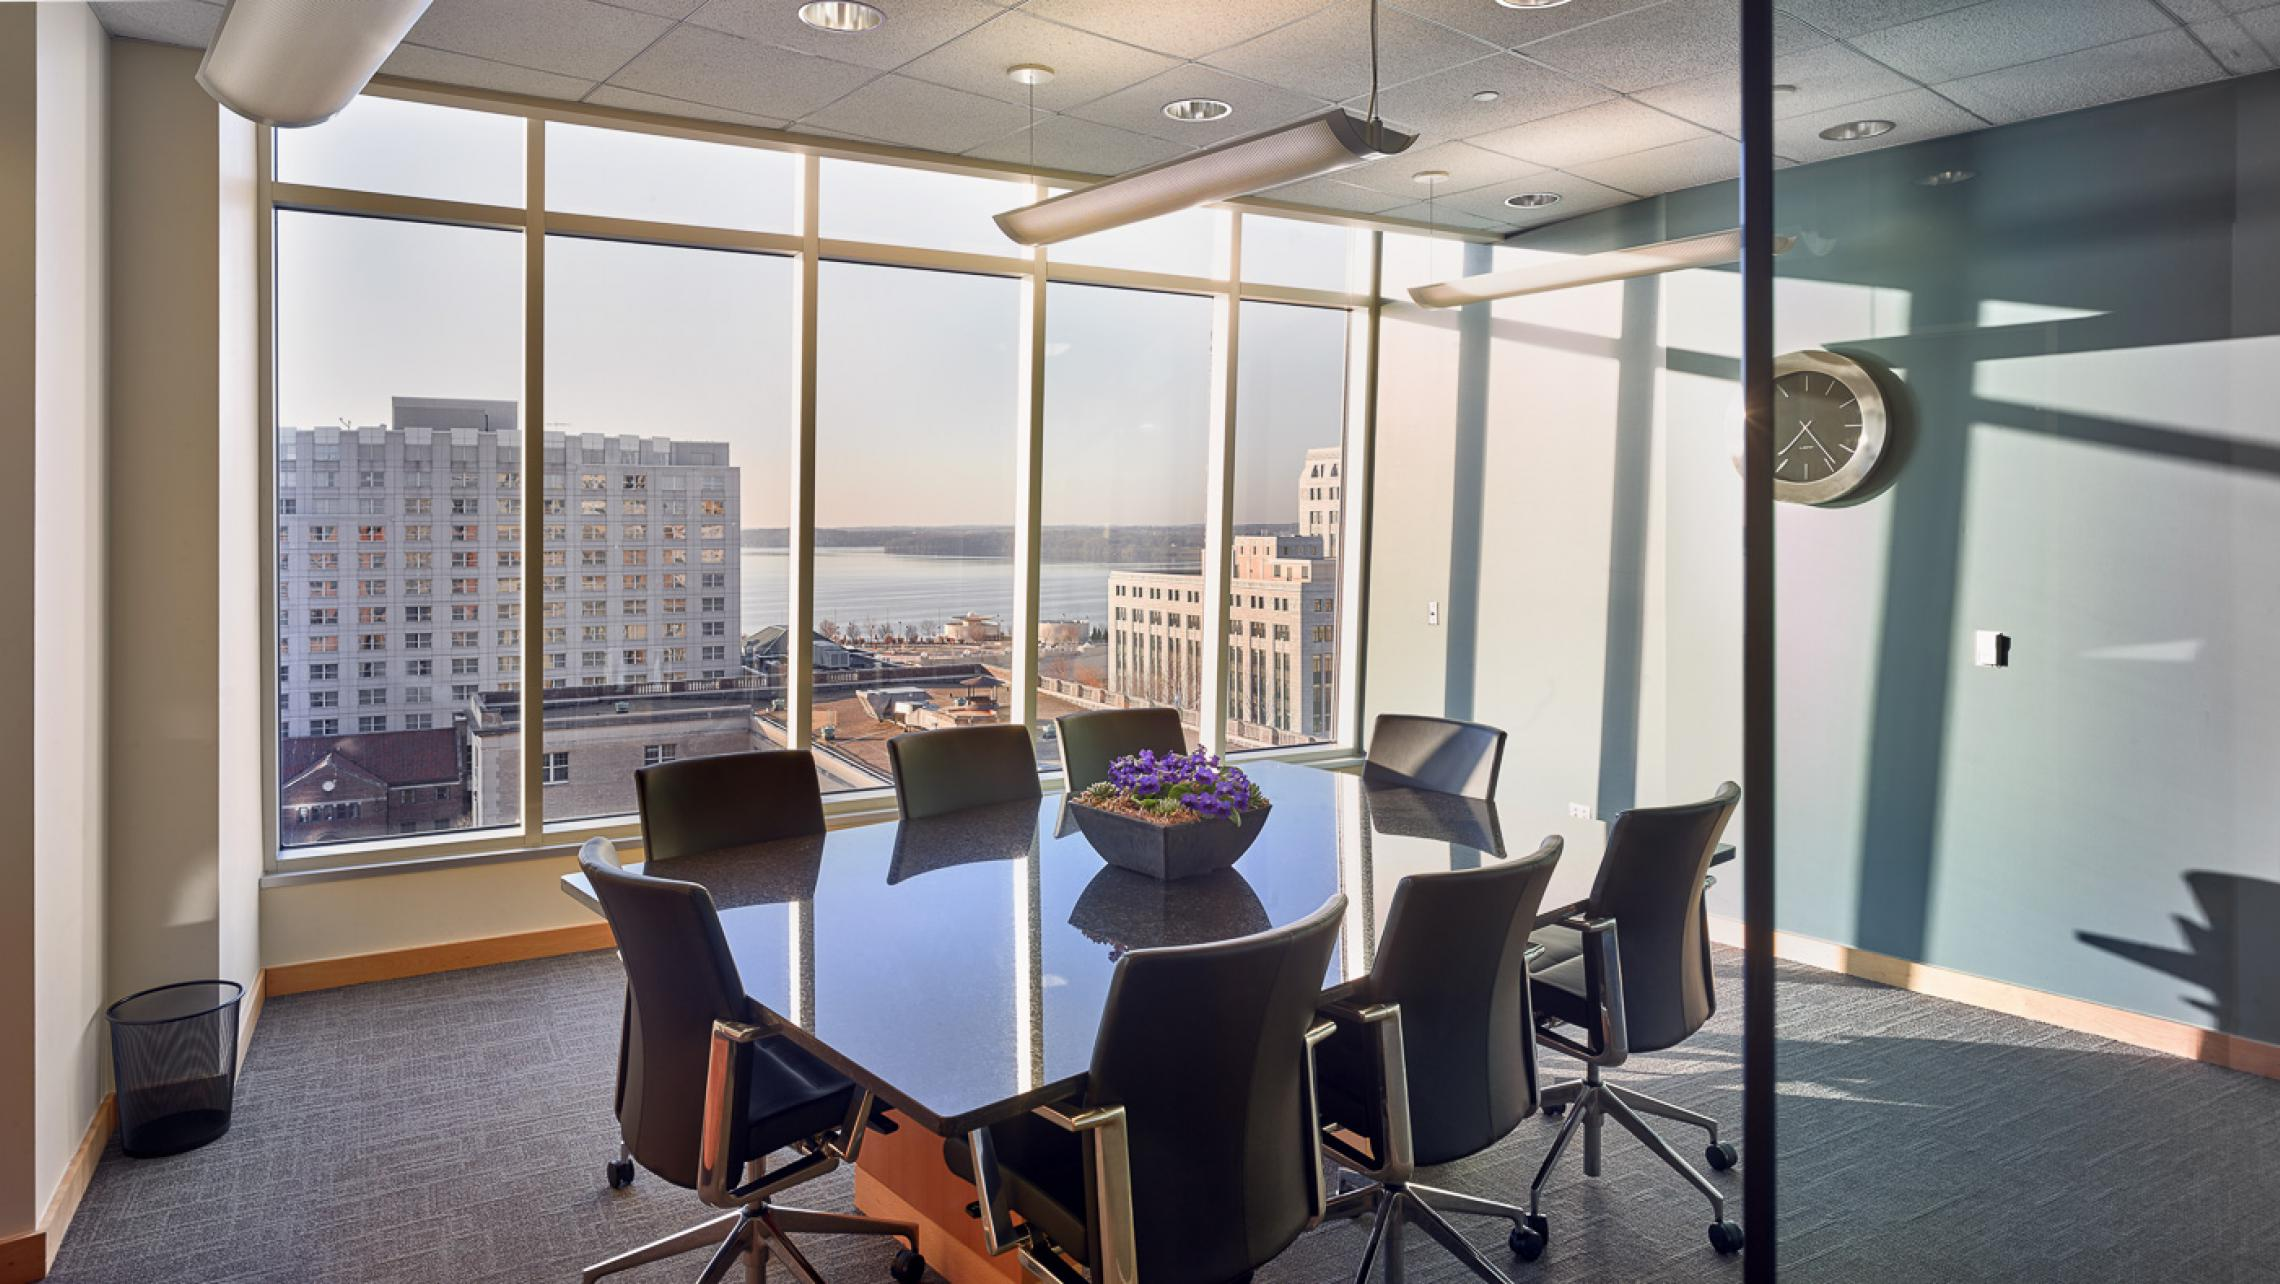 ULI Capitol Executive Suites - Monona Conference Room